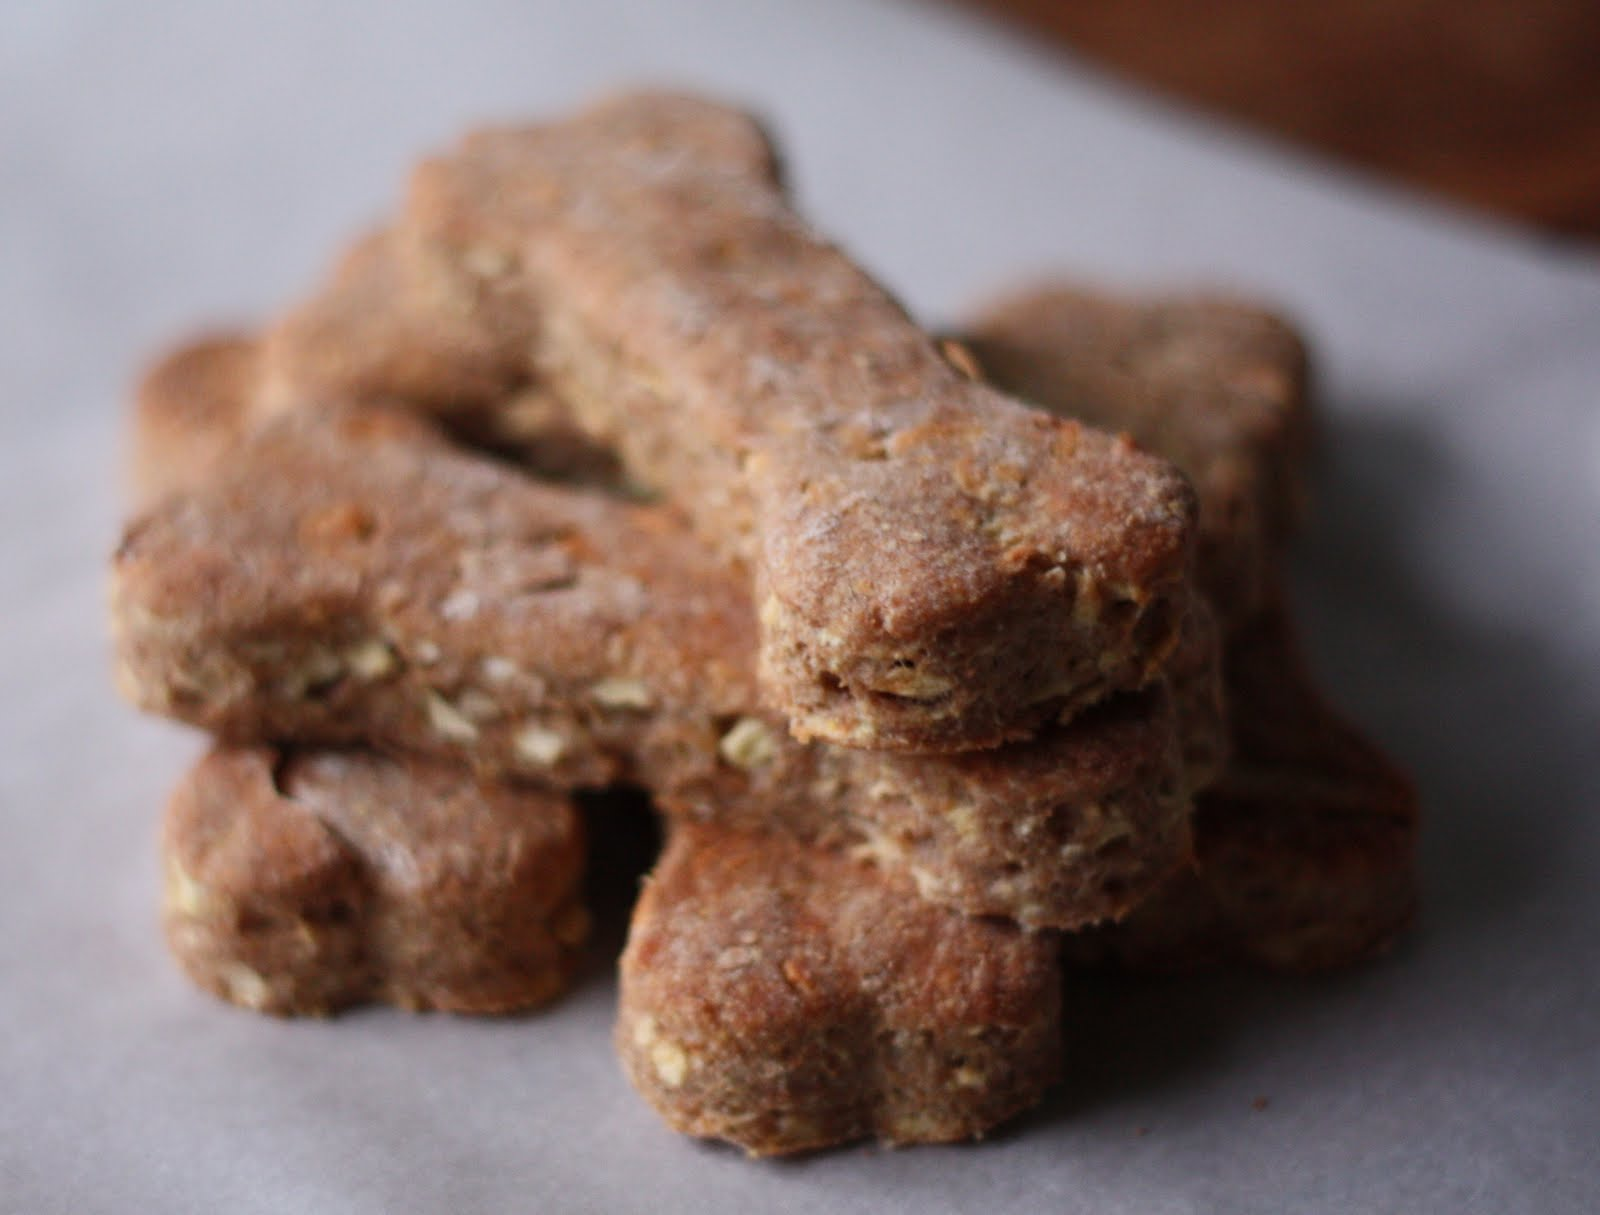 Homemade Dog Treats http://www.17apart.com/2011/09/how-to-homemade-natural-dog-treat.html